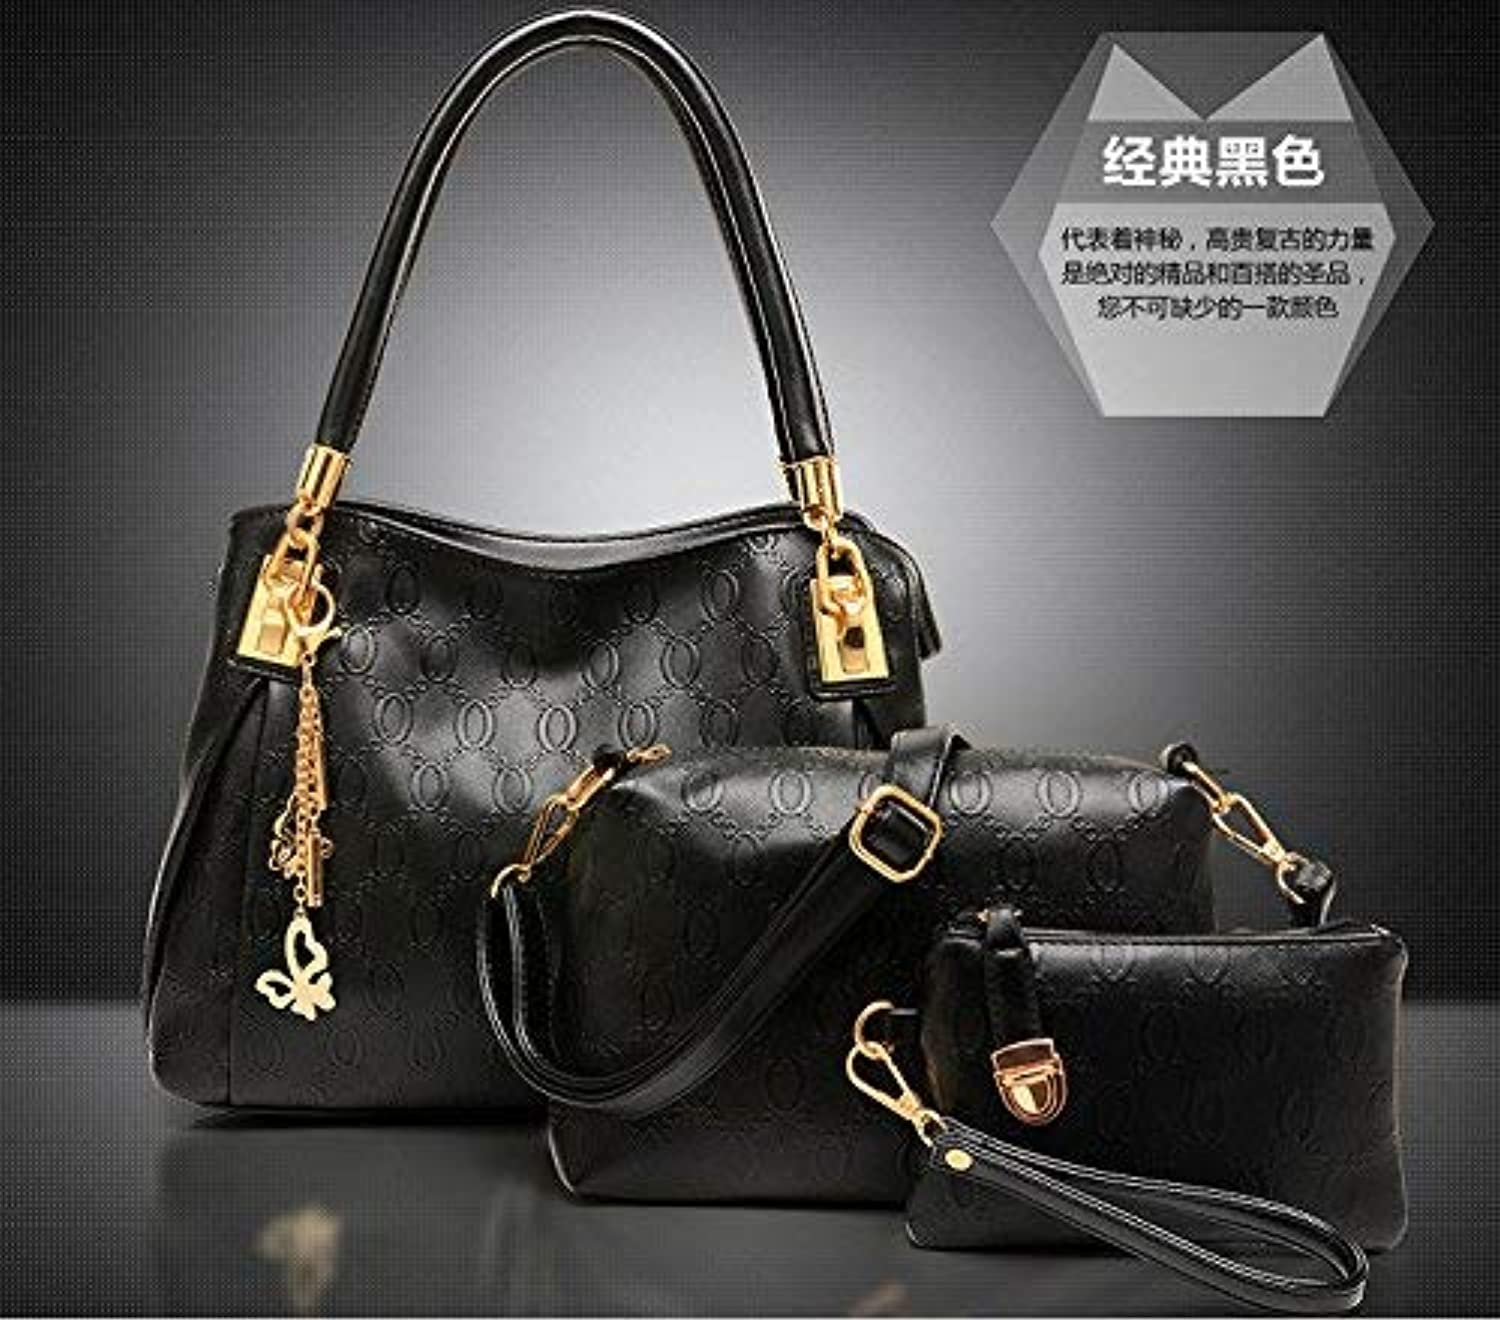 Huasen Evening Bag Handbag Atmosphere Fashion Three Piece Handbag Shoulder Bag Handbag Party Handbag (color   Black)